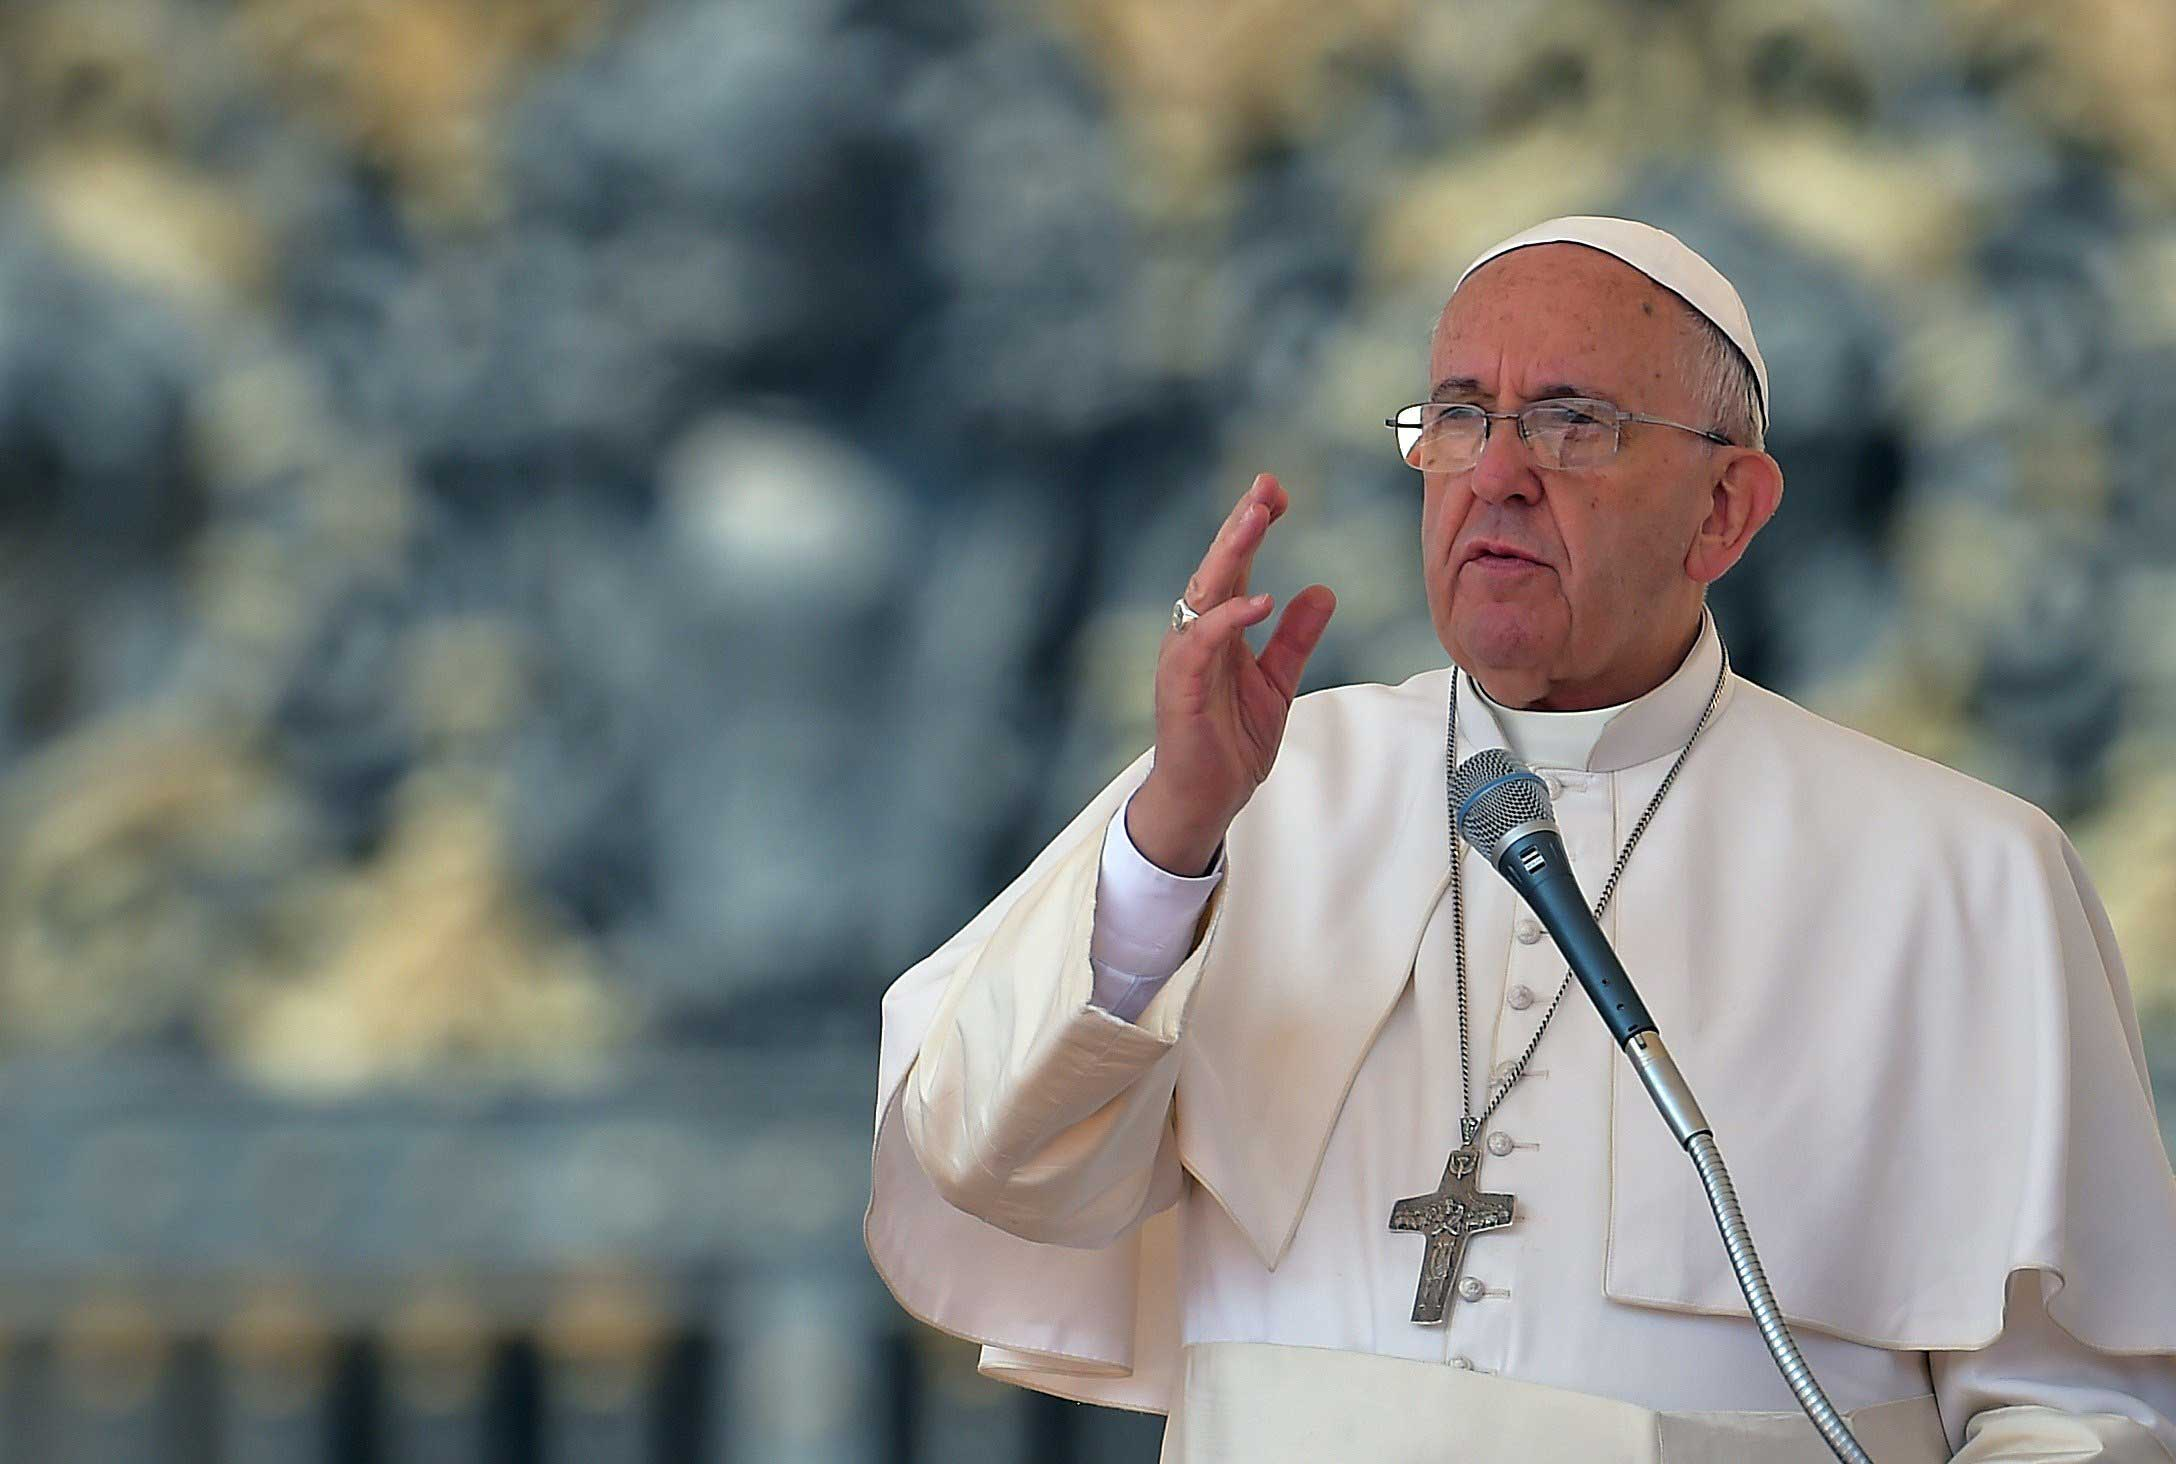 Pope Francis blesses the faithful during his weekly general audience at the Vatican on April 15, 2015.